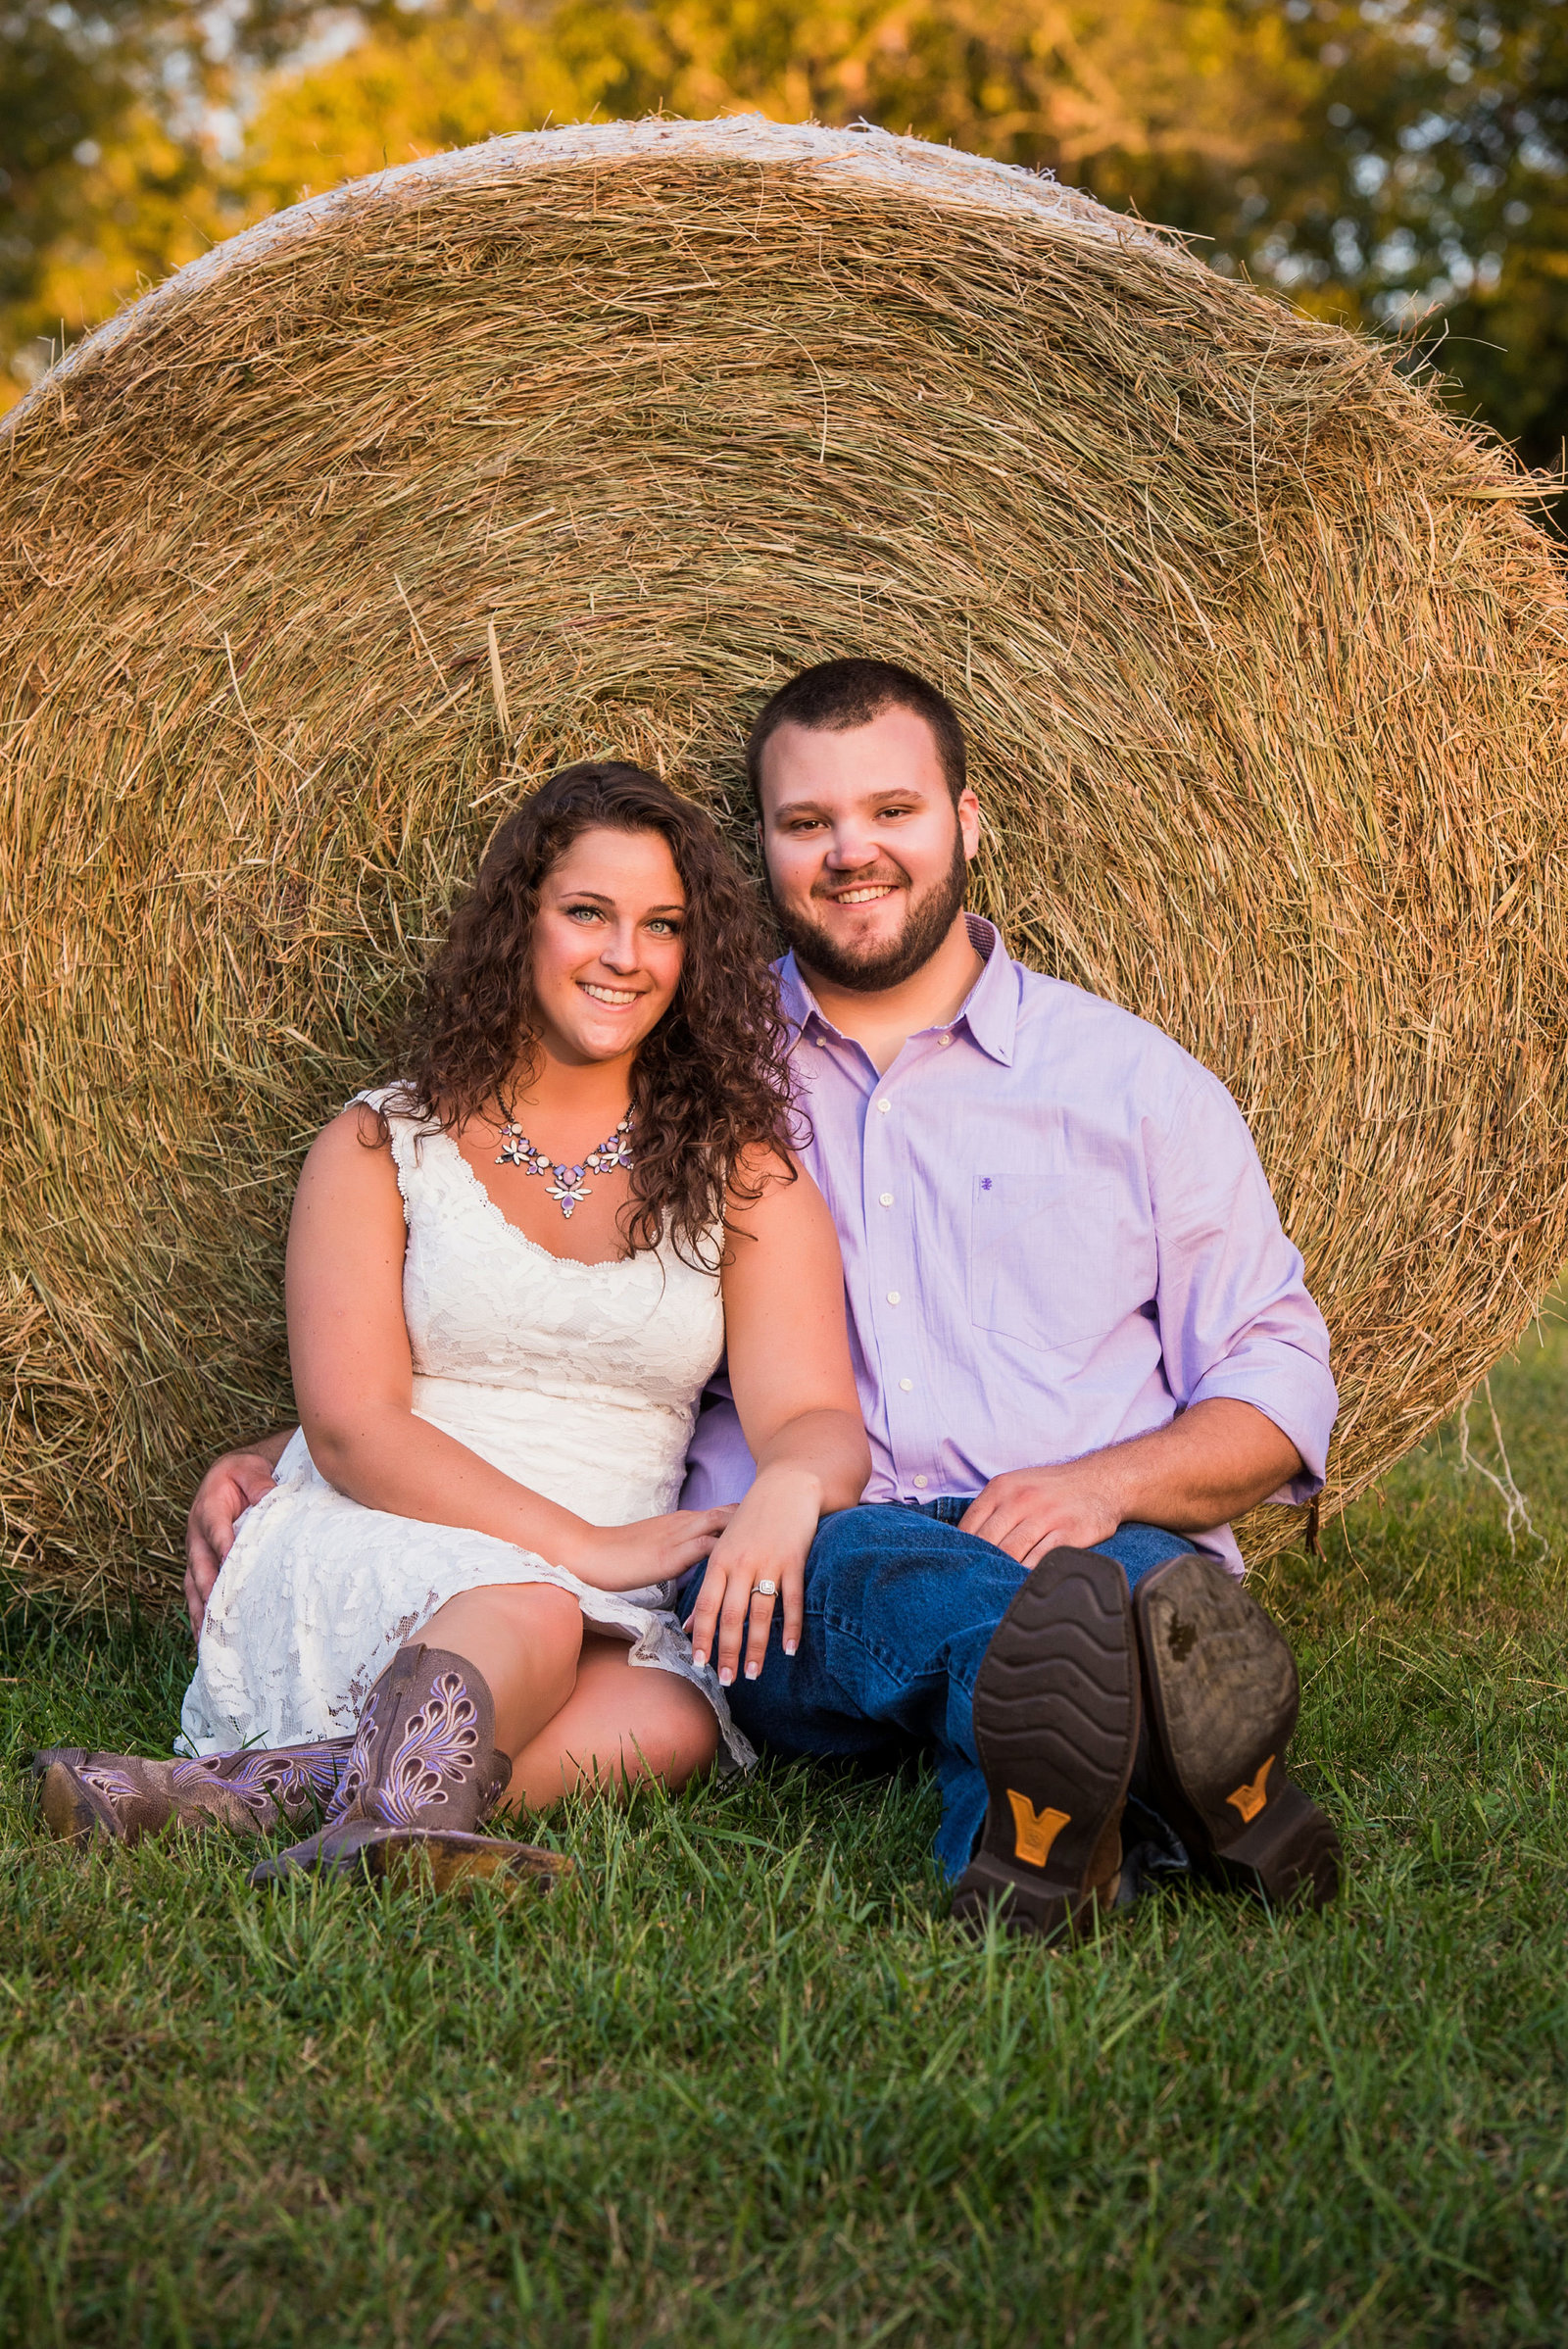 NJ_Rustic_Engagement_Photography160